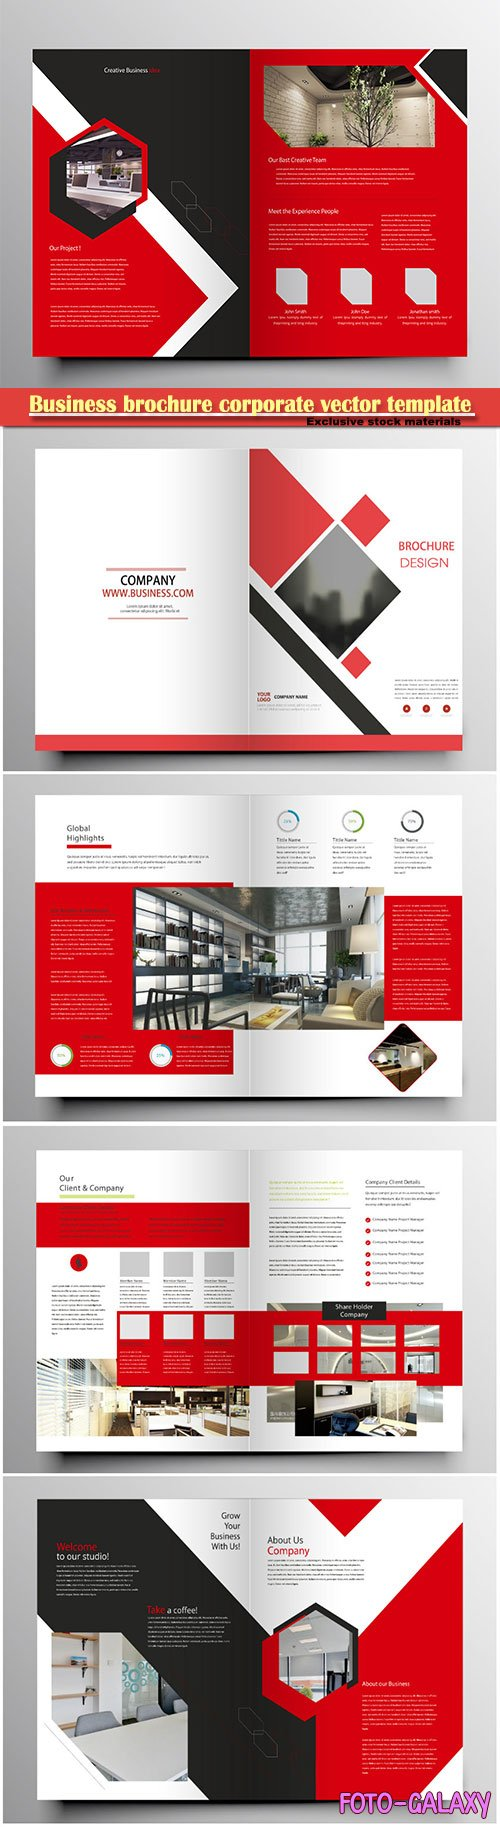 Business brochure corporate vector template, magazine flyer mockup # 31